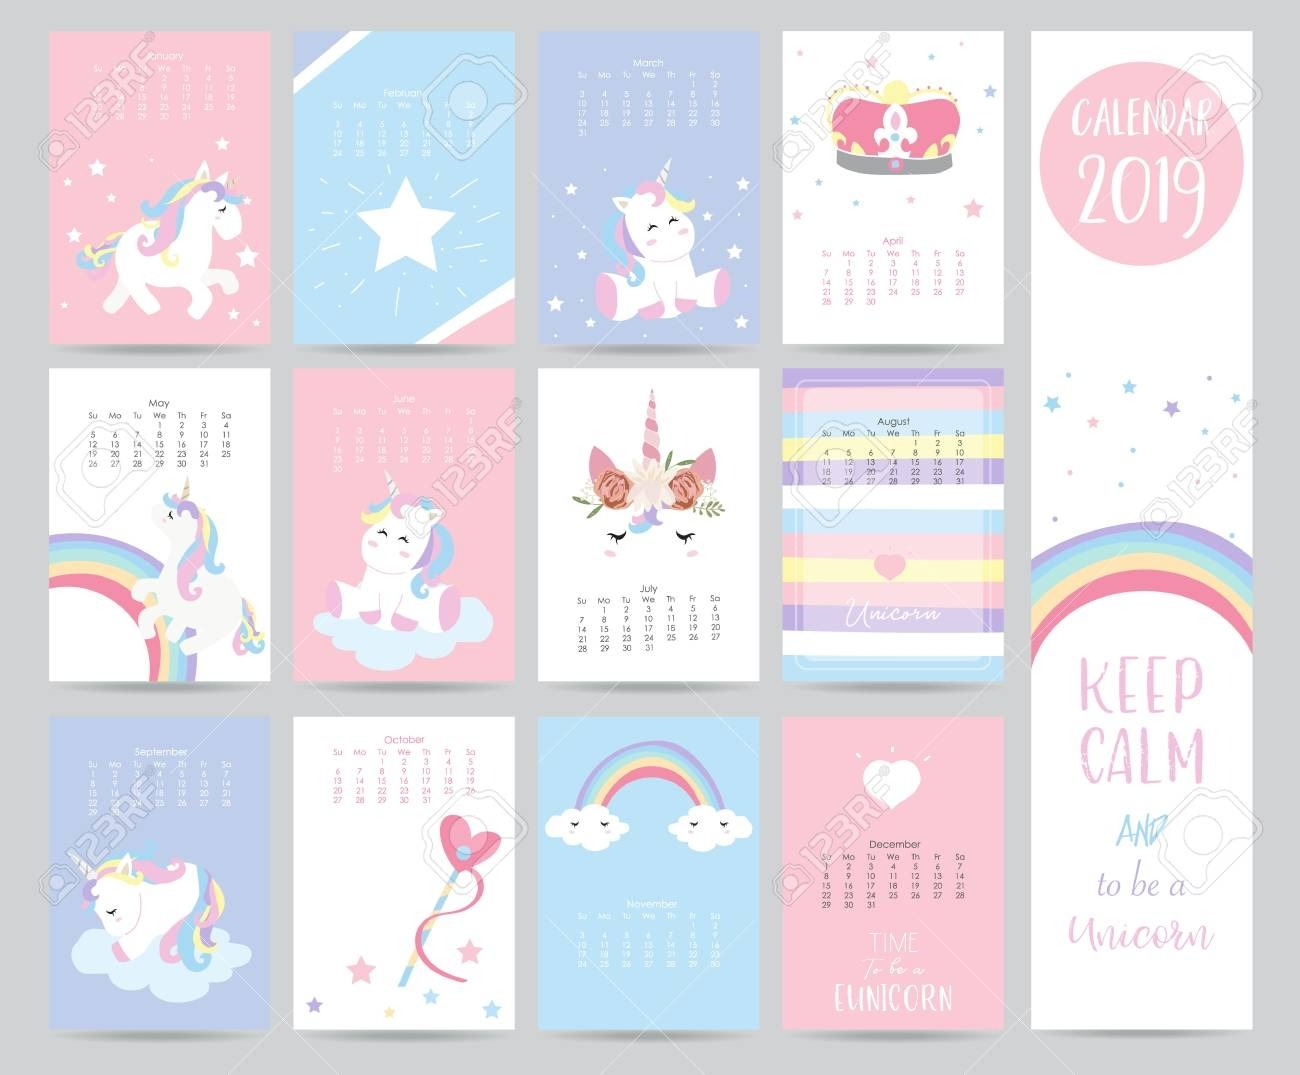 Cute Monthly Calendar 2019 With Sweet Unicorn,crown,heart And..